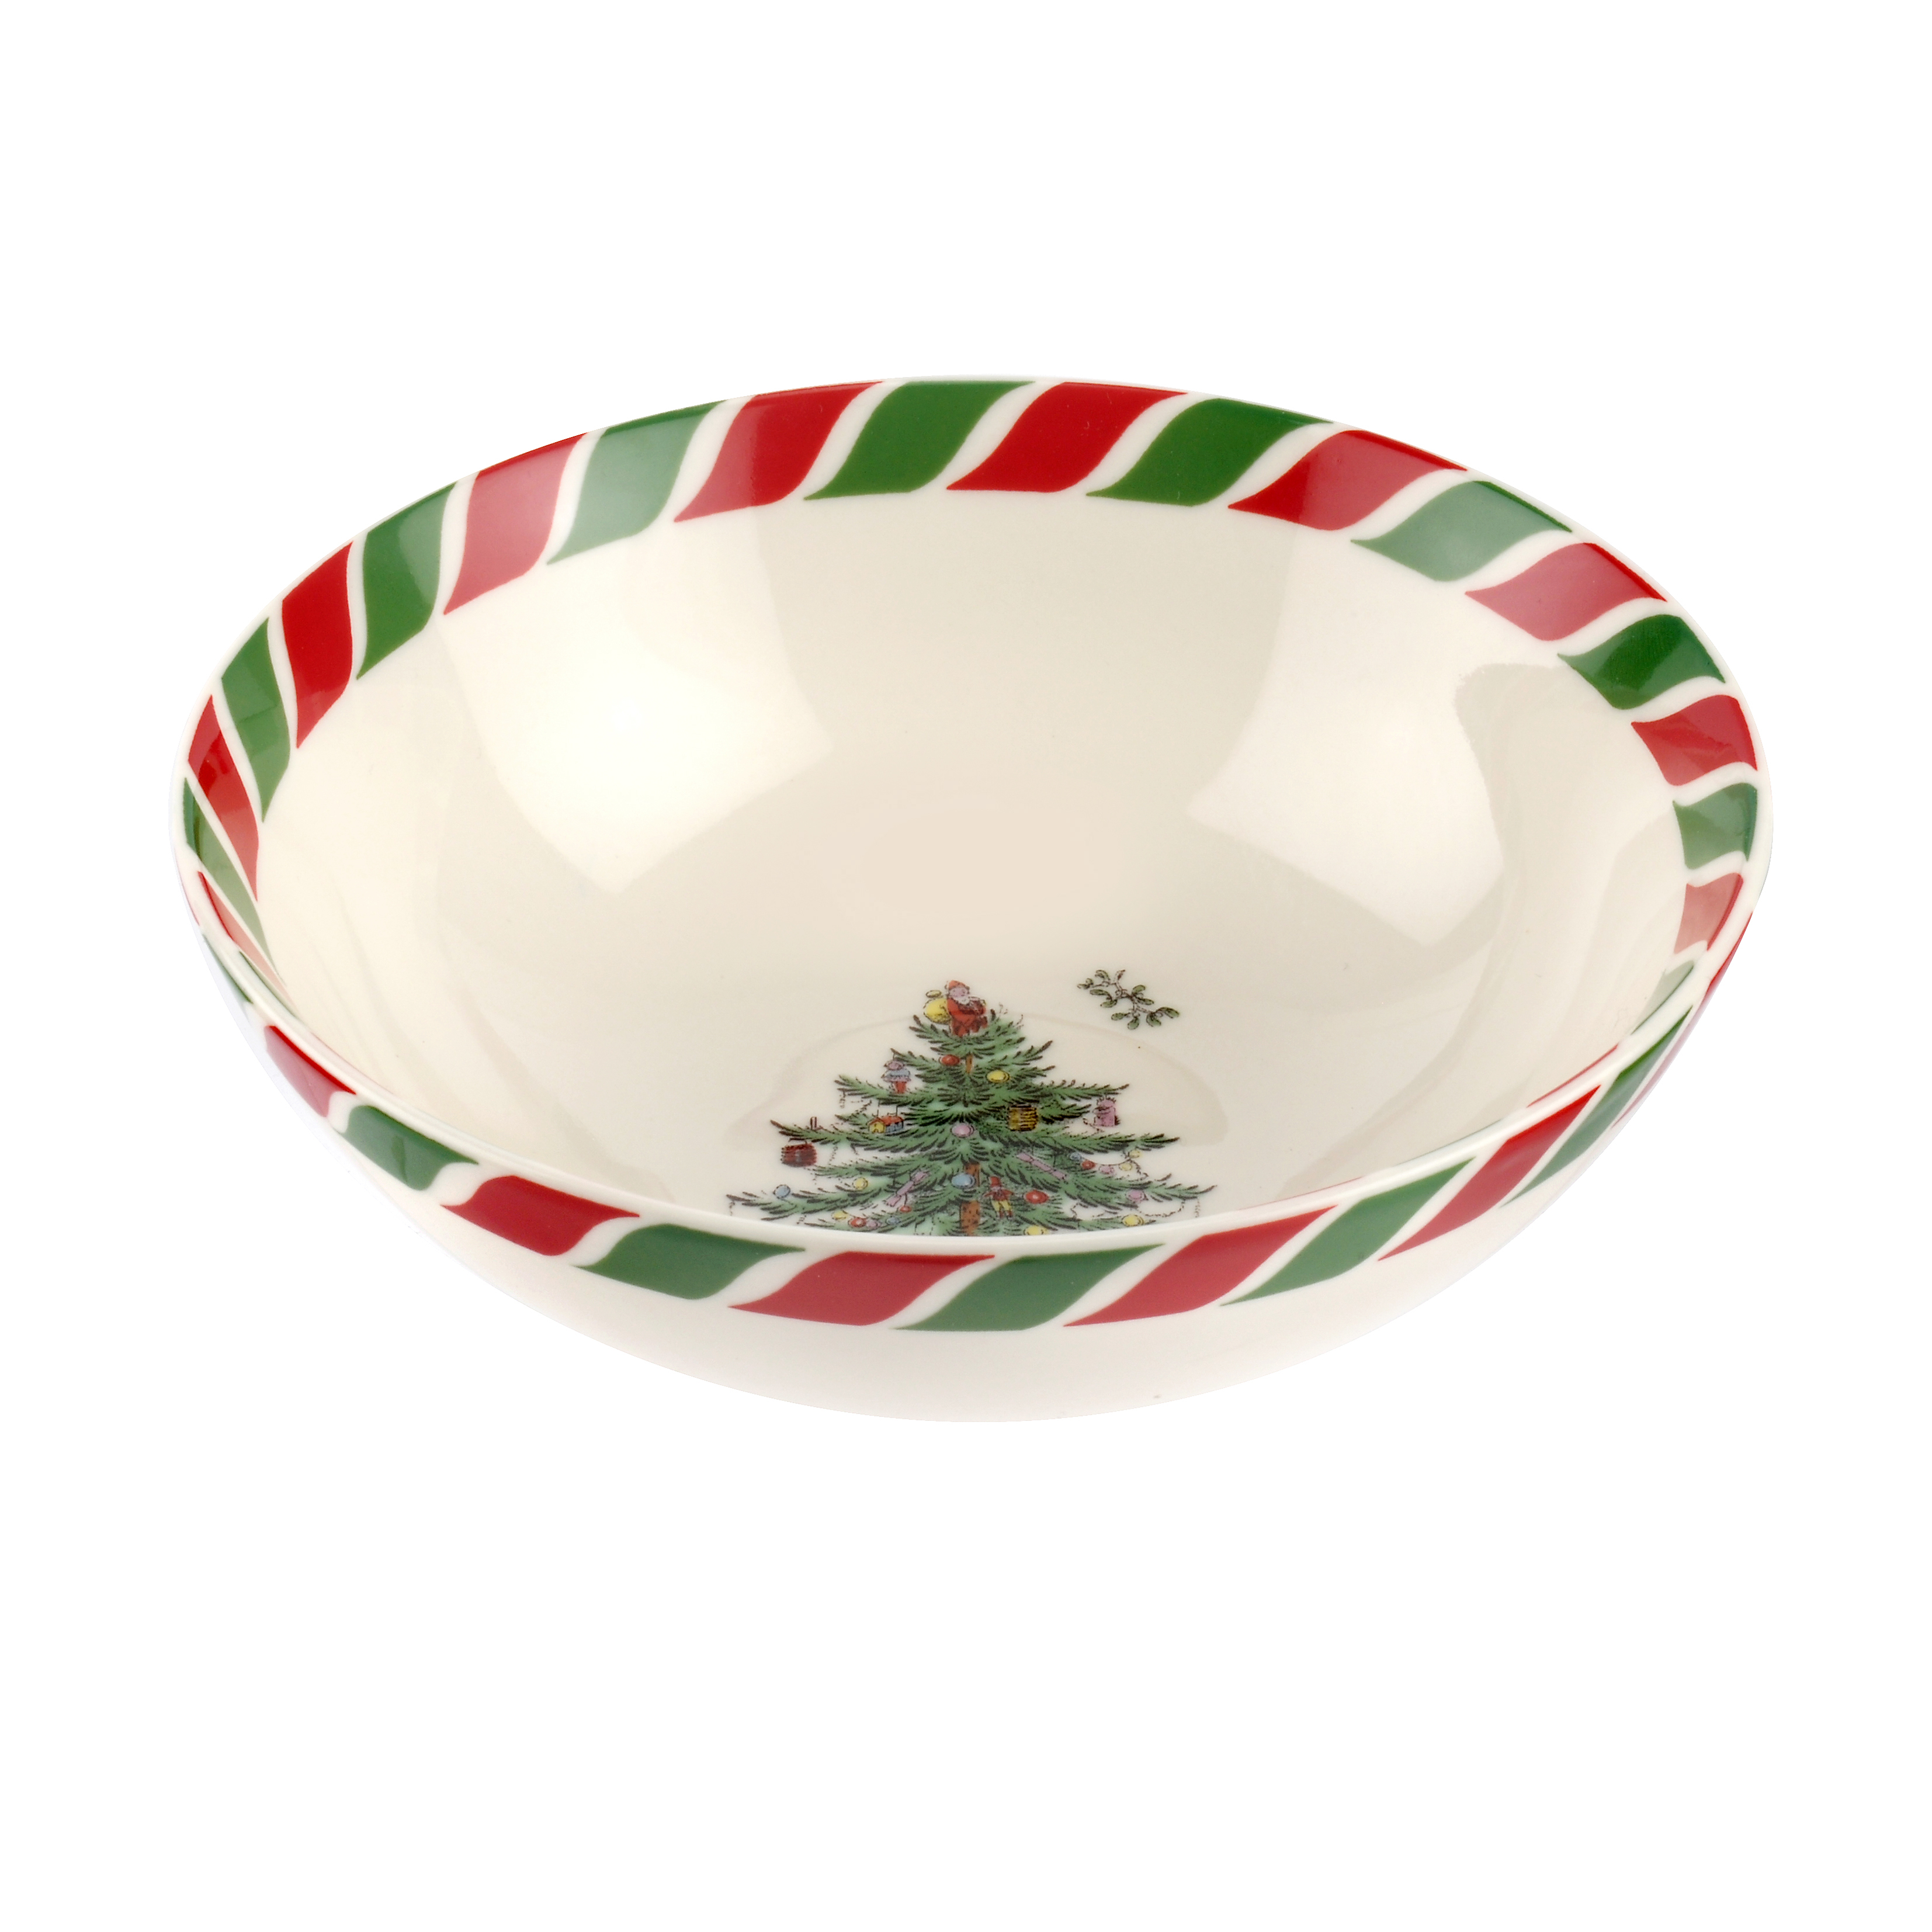 Spode Christmas Tree 6 Inch Candy Cane Bowl image number 0